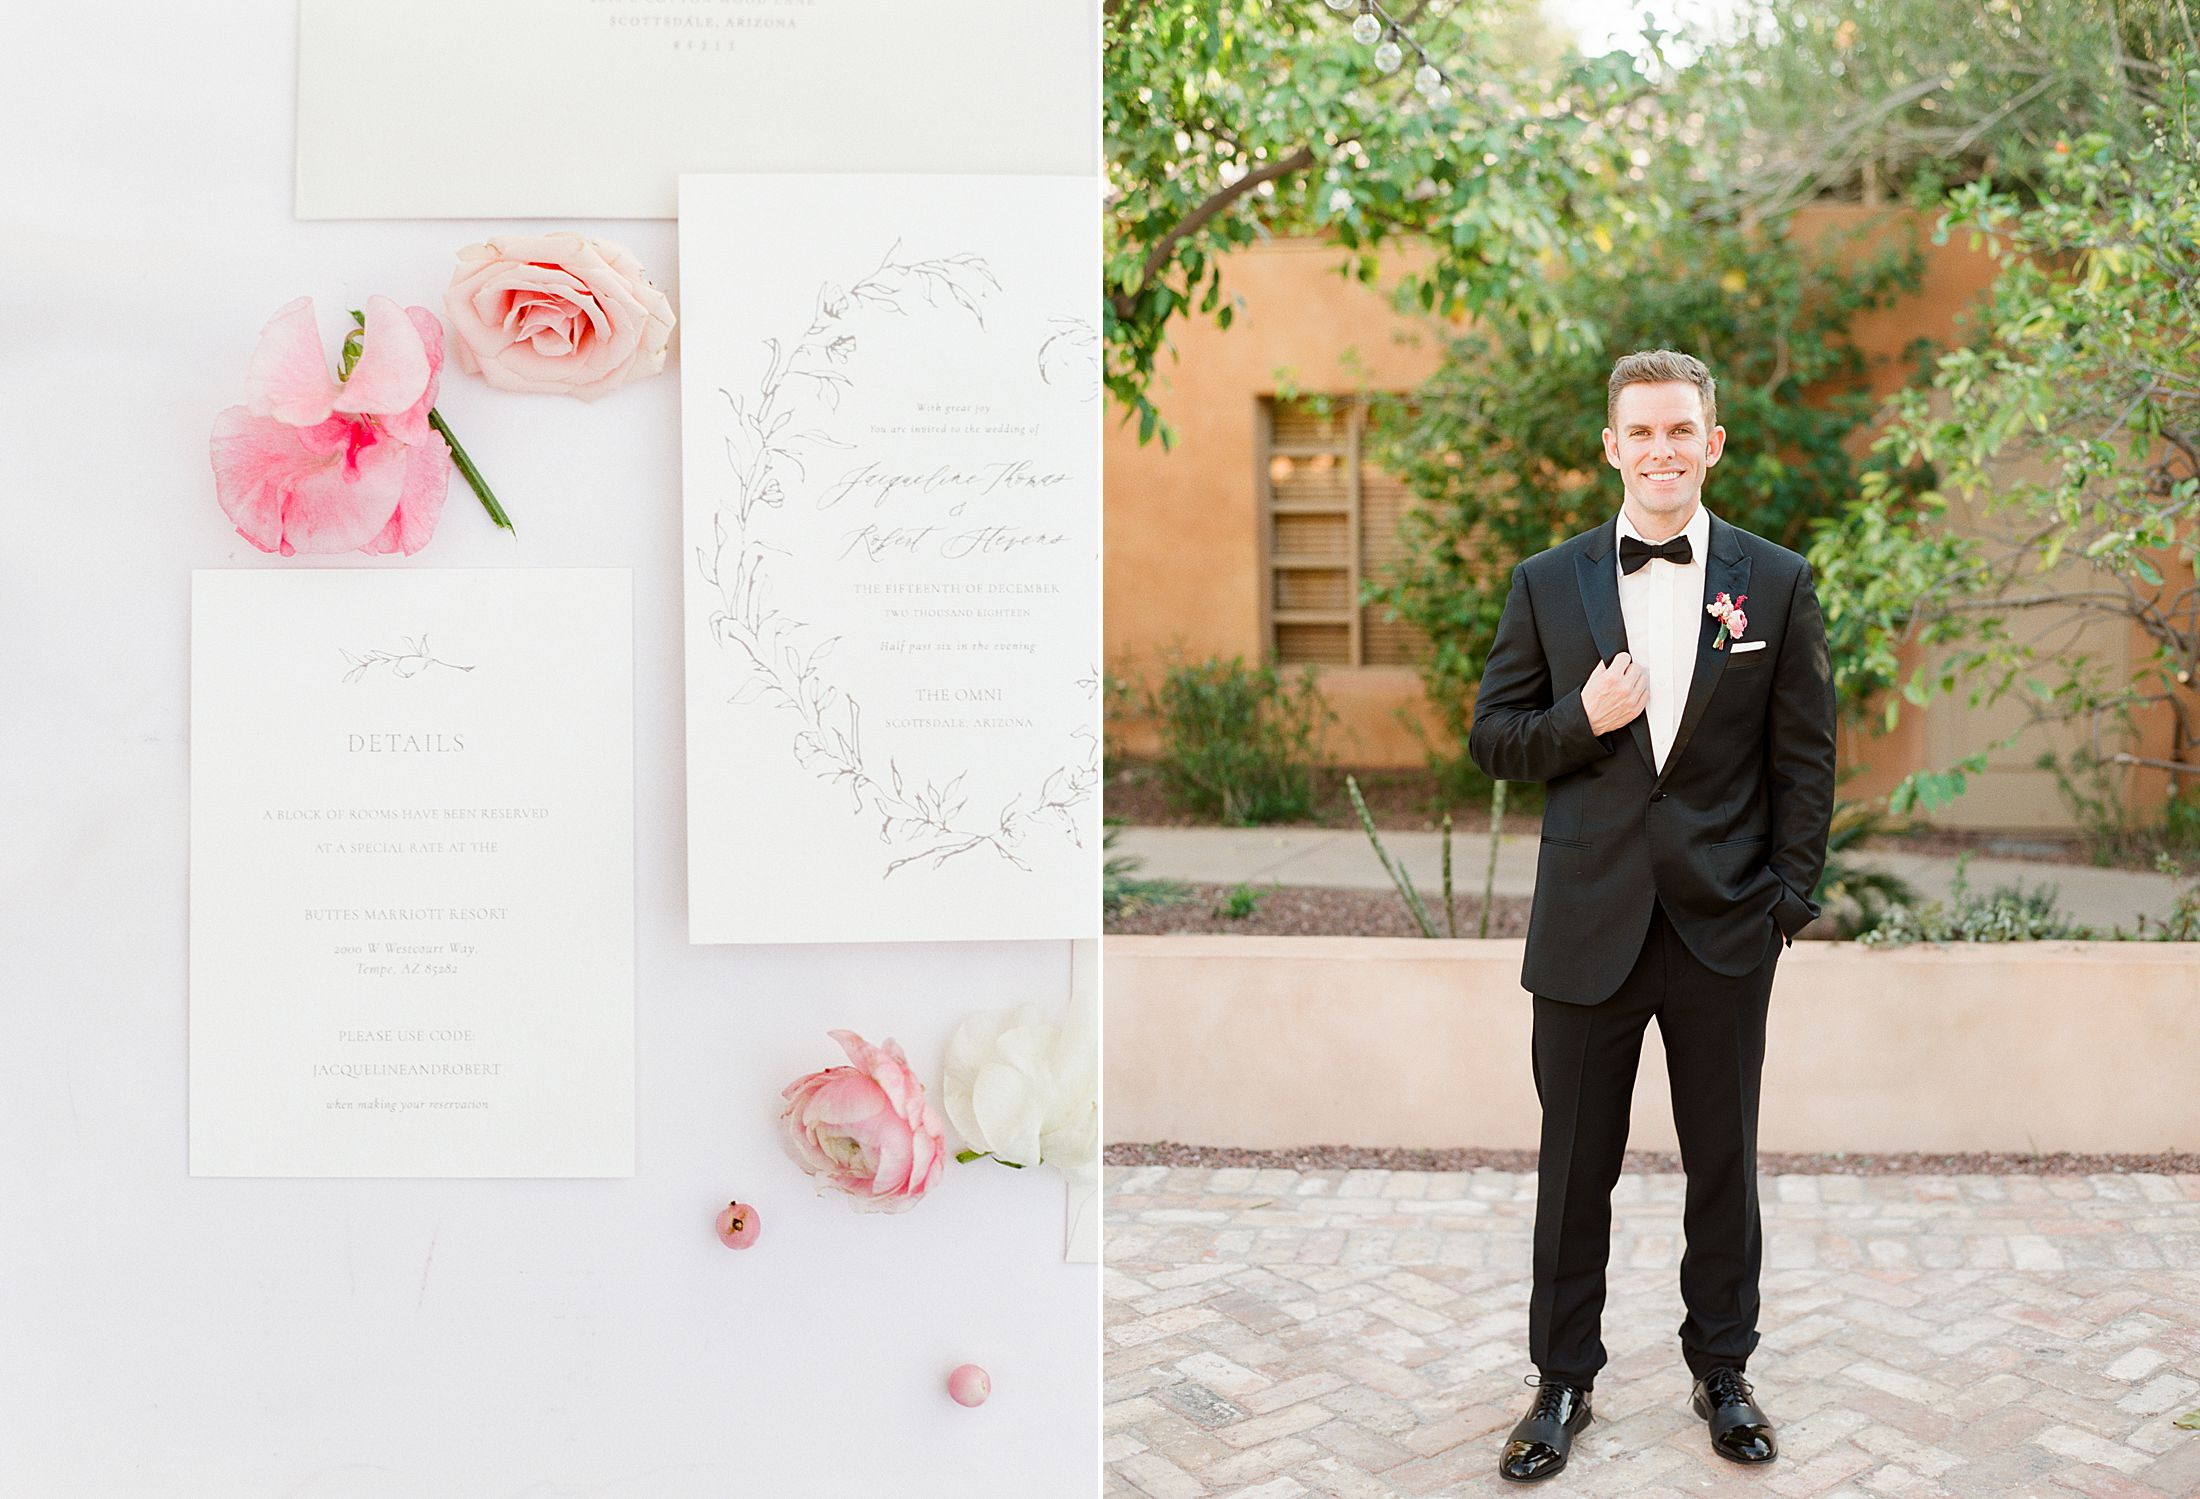 Pink Ombre Wedding Inspiration on Style Me Pretty - Royal Palms Wedding - Scottsdale Wedding - Ashley Baumgartner - Bloom and Blueprint - Wedding Puppies - Bulldog Puppies_0008.jpg